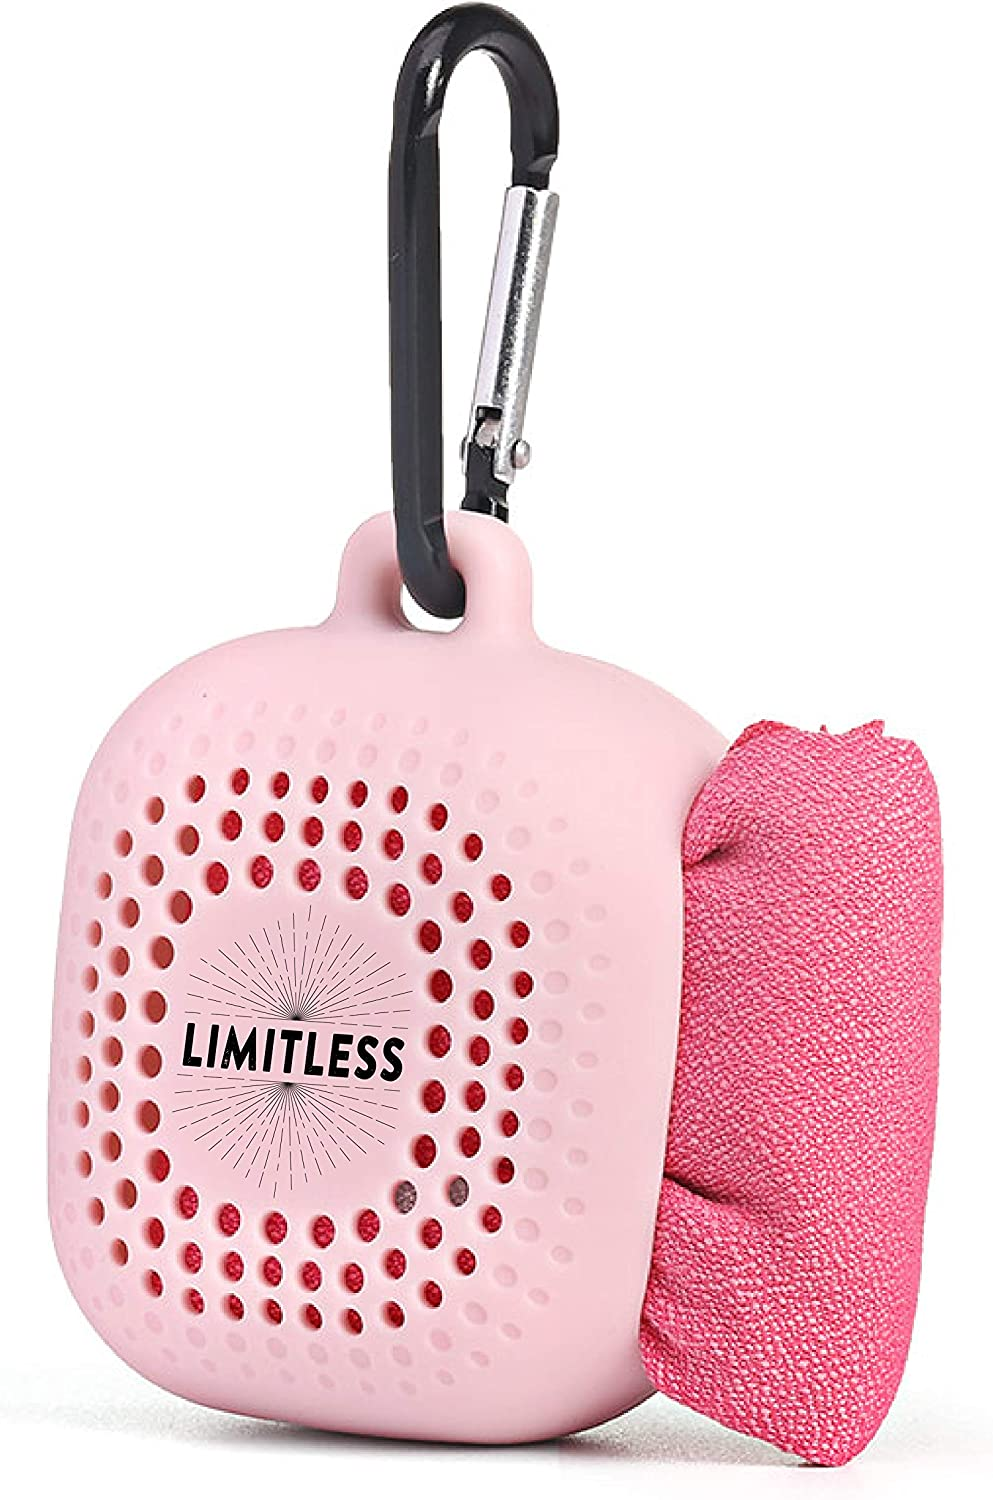 LIMITLESS Travel Towel with Silicone Travel Case-Free Bonus BPA Free Silicone Straw  Fast Drying Absorbent Microfiber Towel for Backpacking  Hiking  Camping  Fitness Gym  Yoga  Sports  Pink Flamingo